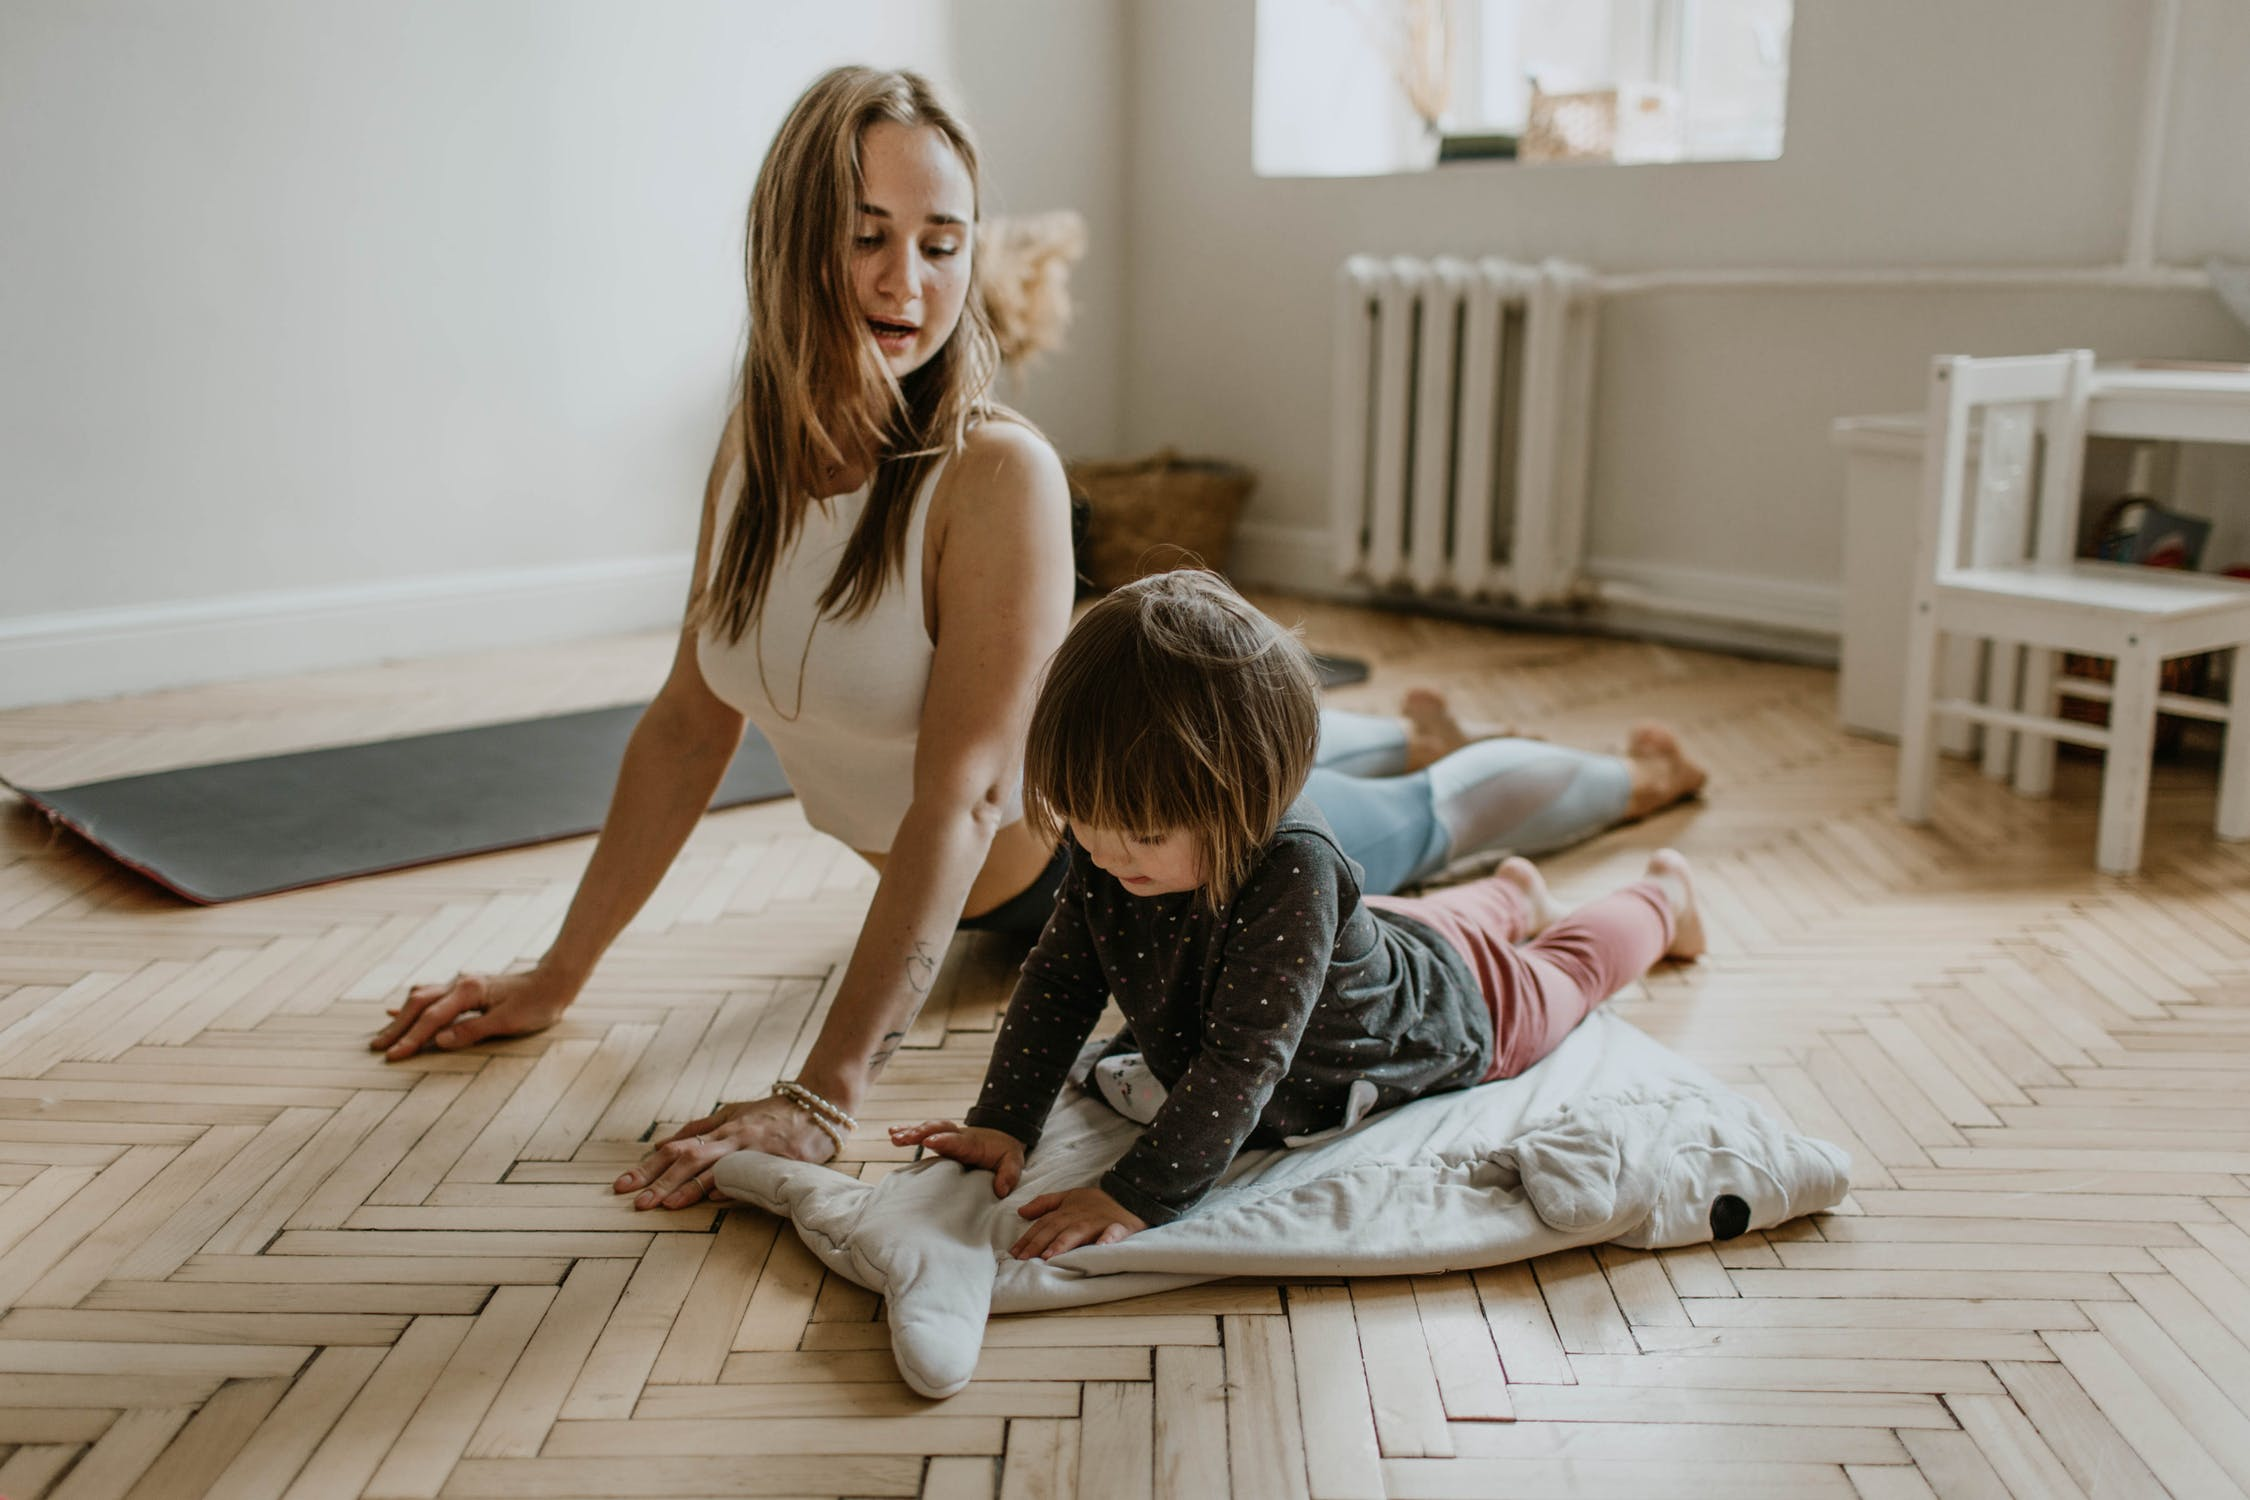 Growing up with mom | Source: Pexels